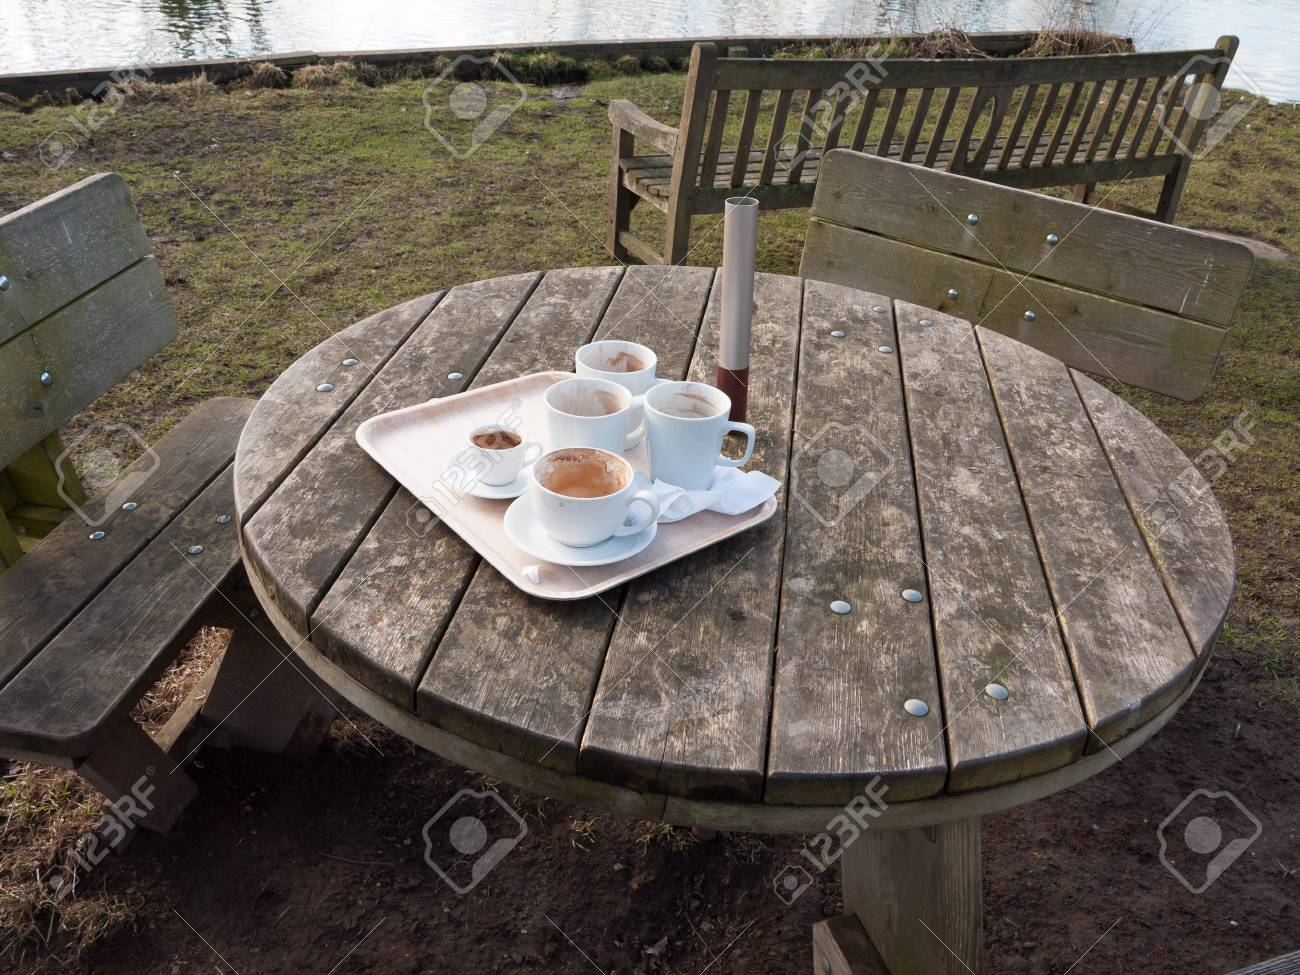 used white cups on tray on wooden table outside cafe essex stock